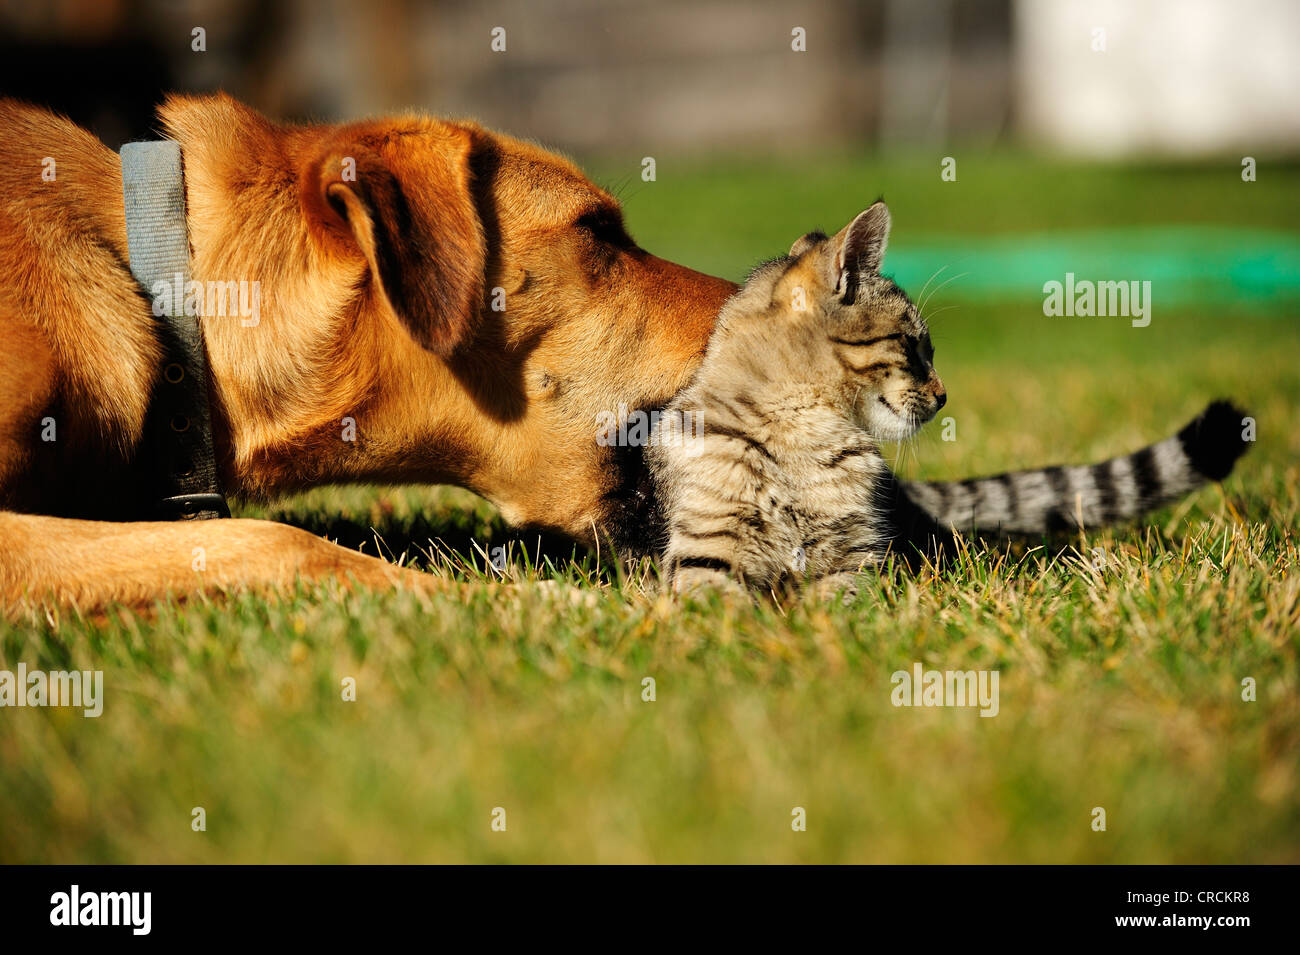 House cat and dog interacting tenderly Stock Photo